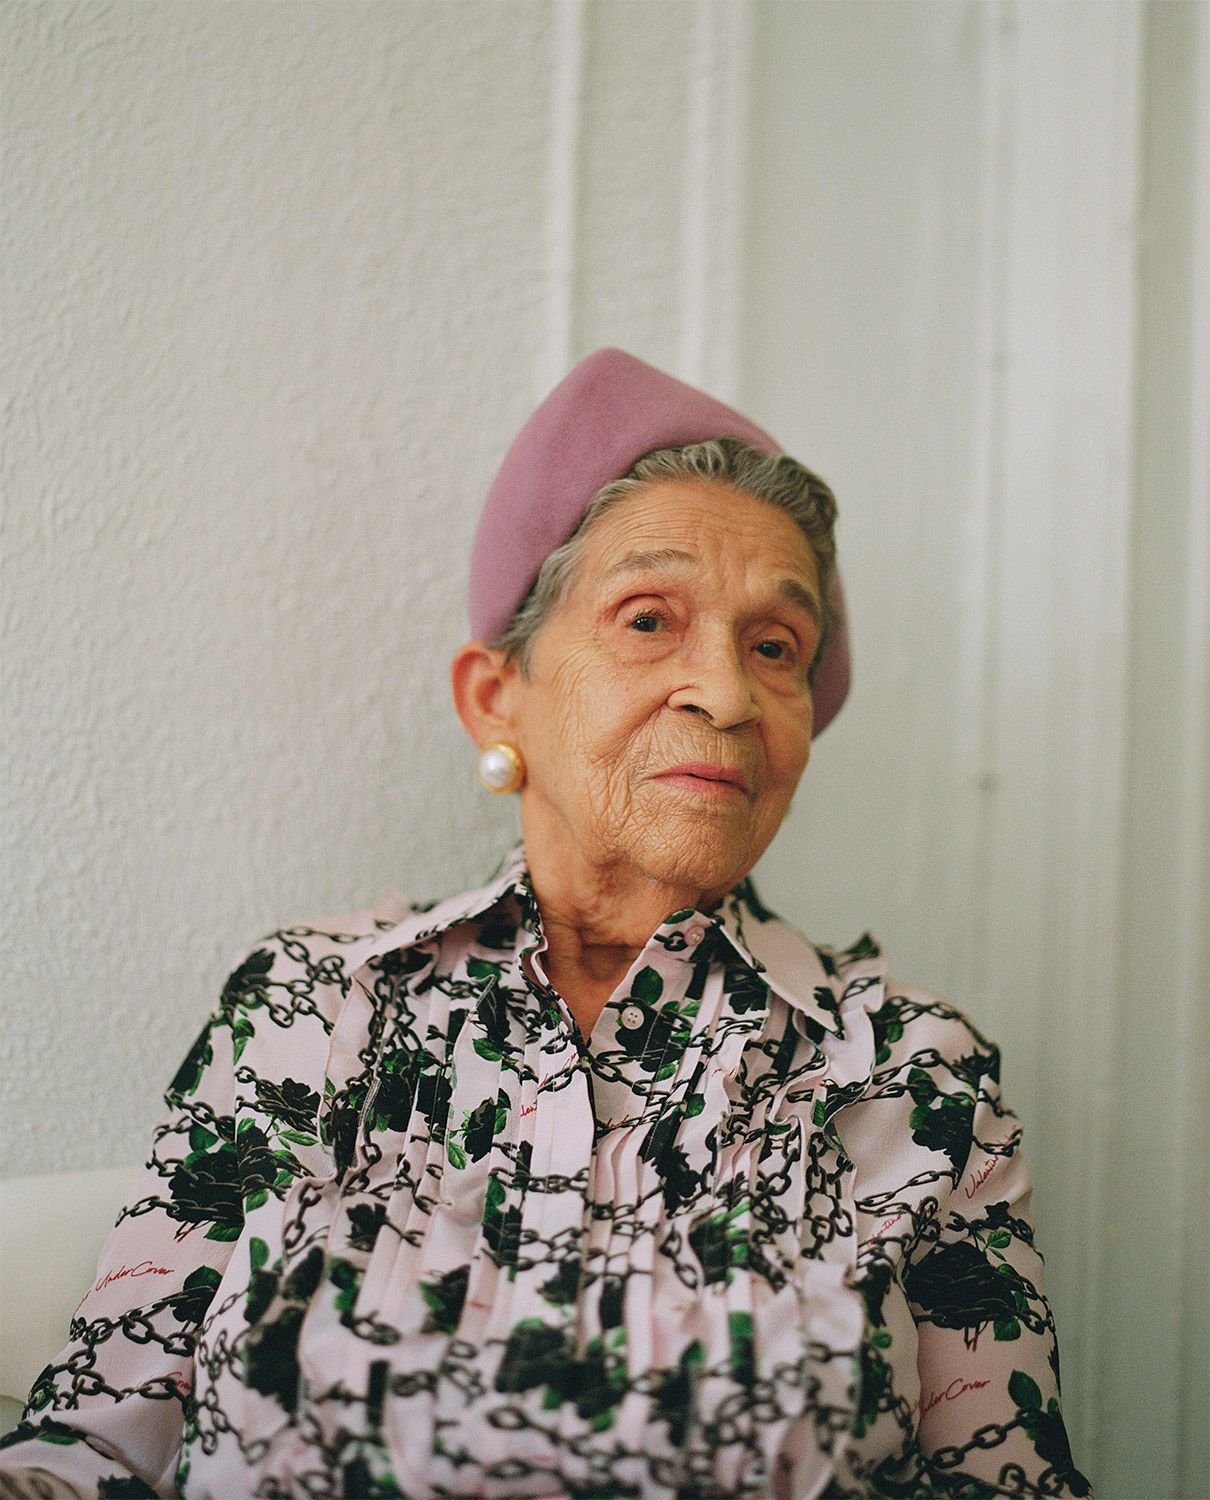 portrait of Altagracia De Pena wearing lilac headband looking at camera by Oumayma B Tanfous for Surviving the time of the butterflies with Phosphenes Magazine